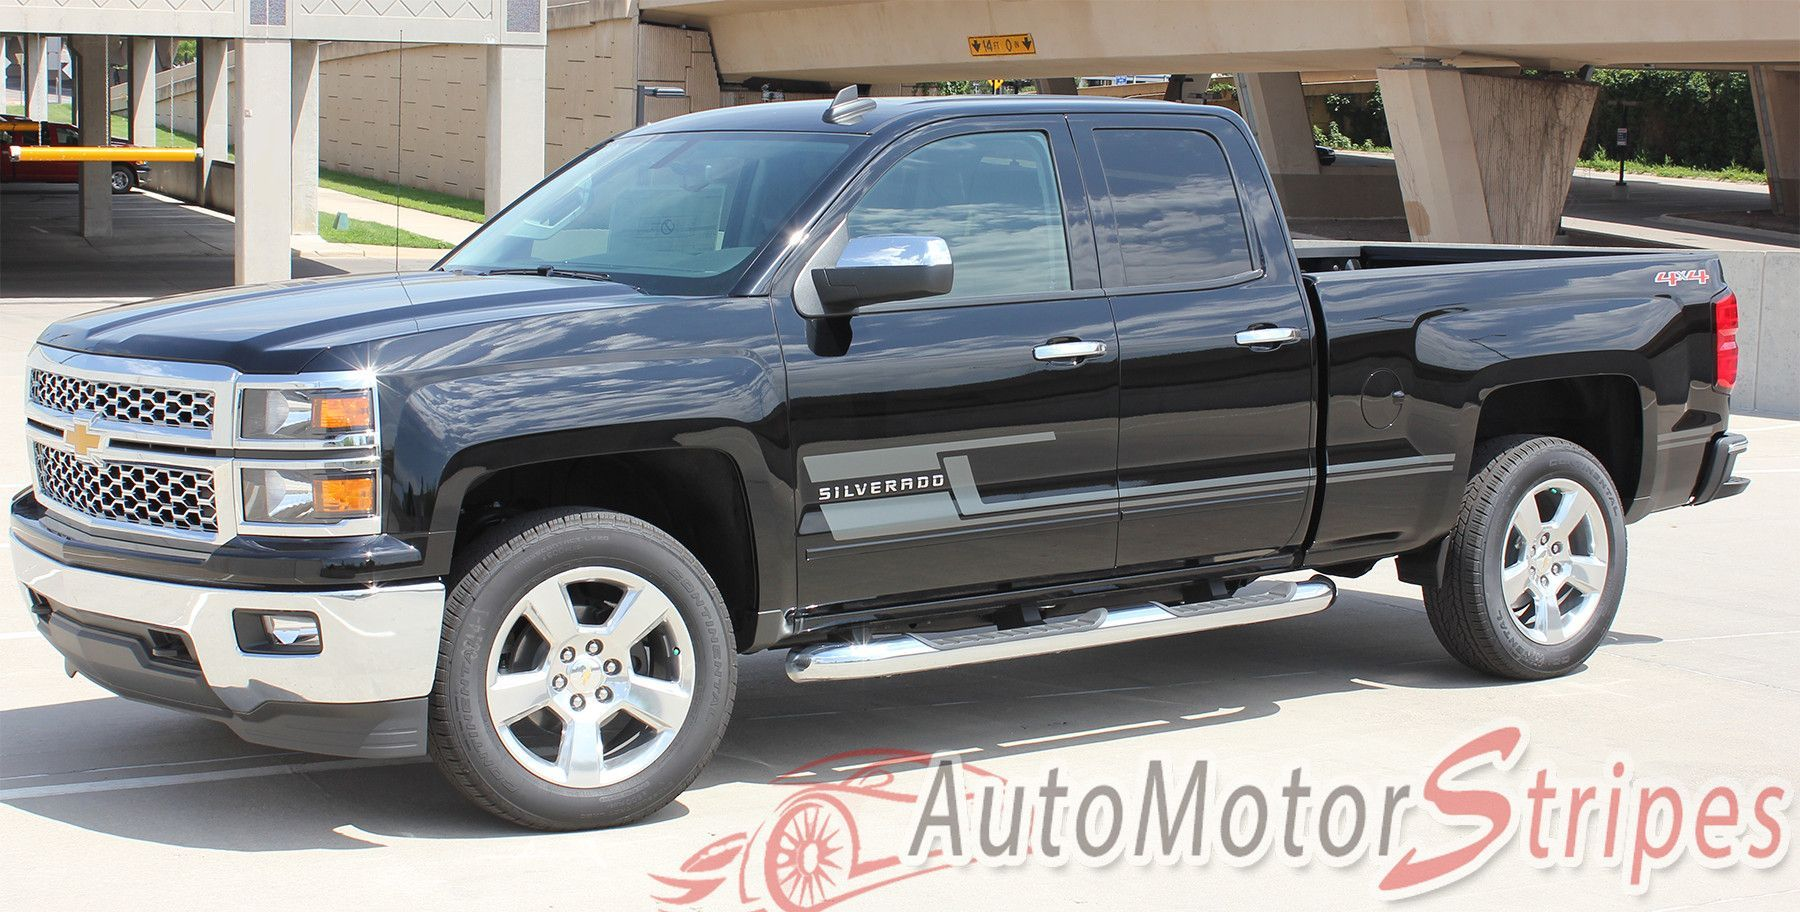 20142018 Chevy Silverado Shadow Lower Truck Door Vinyl